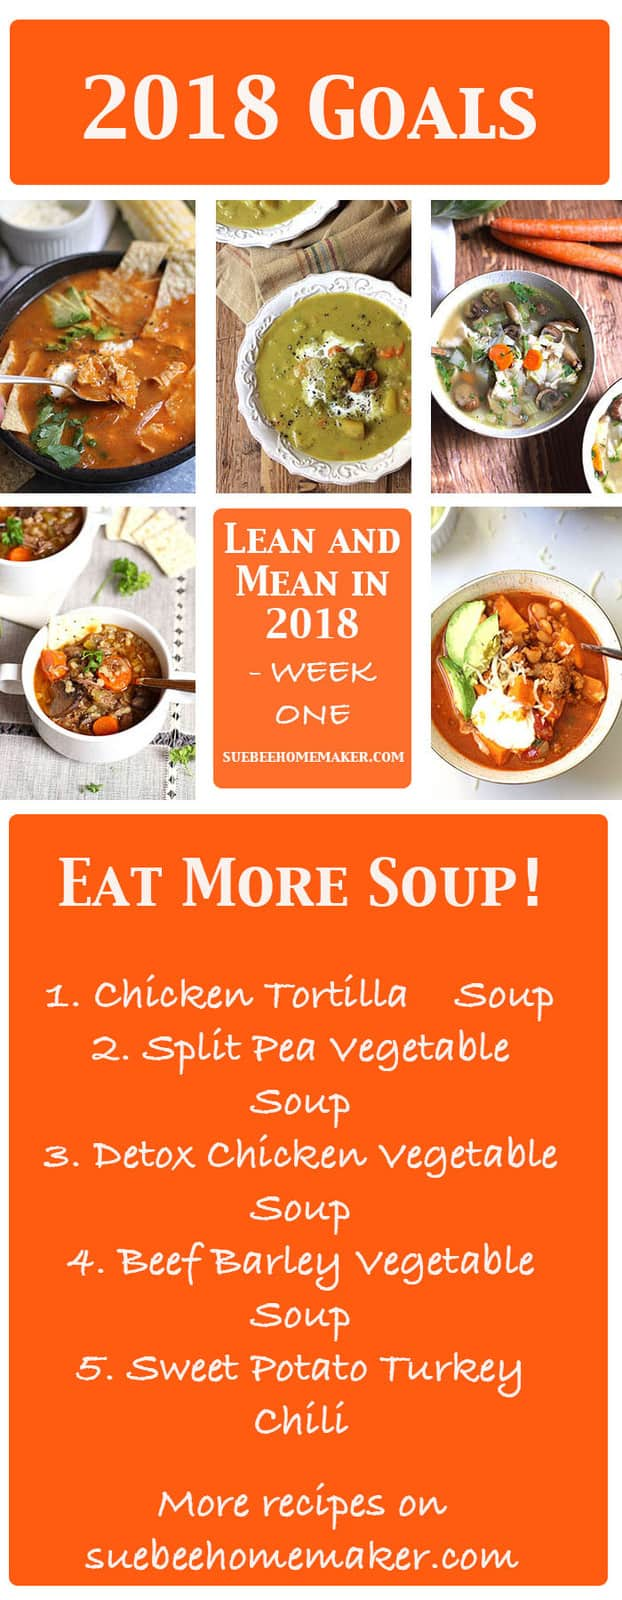 Lean and Mean in 2018 - it's all about balance. My five soup recipes will give you a great jump-start to your clean eating in 2018! | suebeehomemaker.com